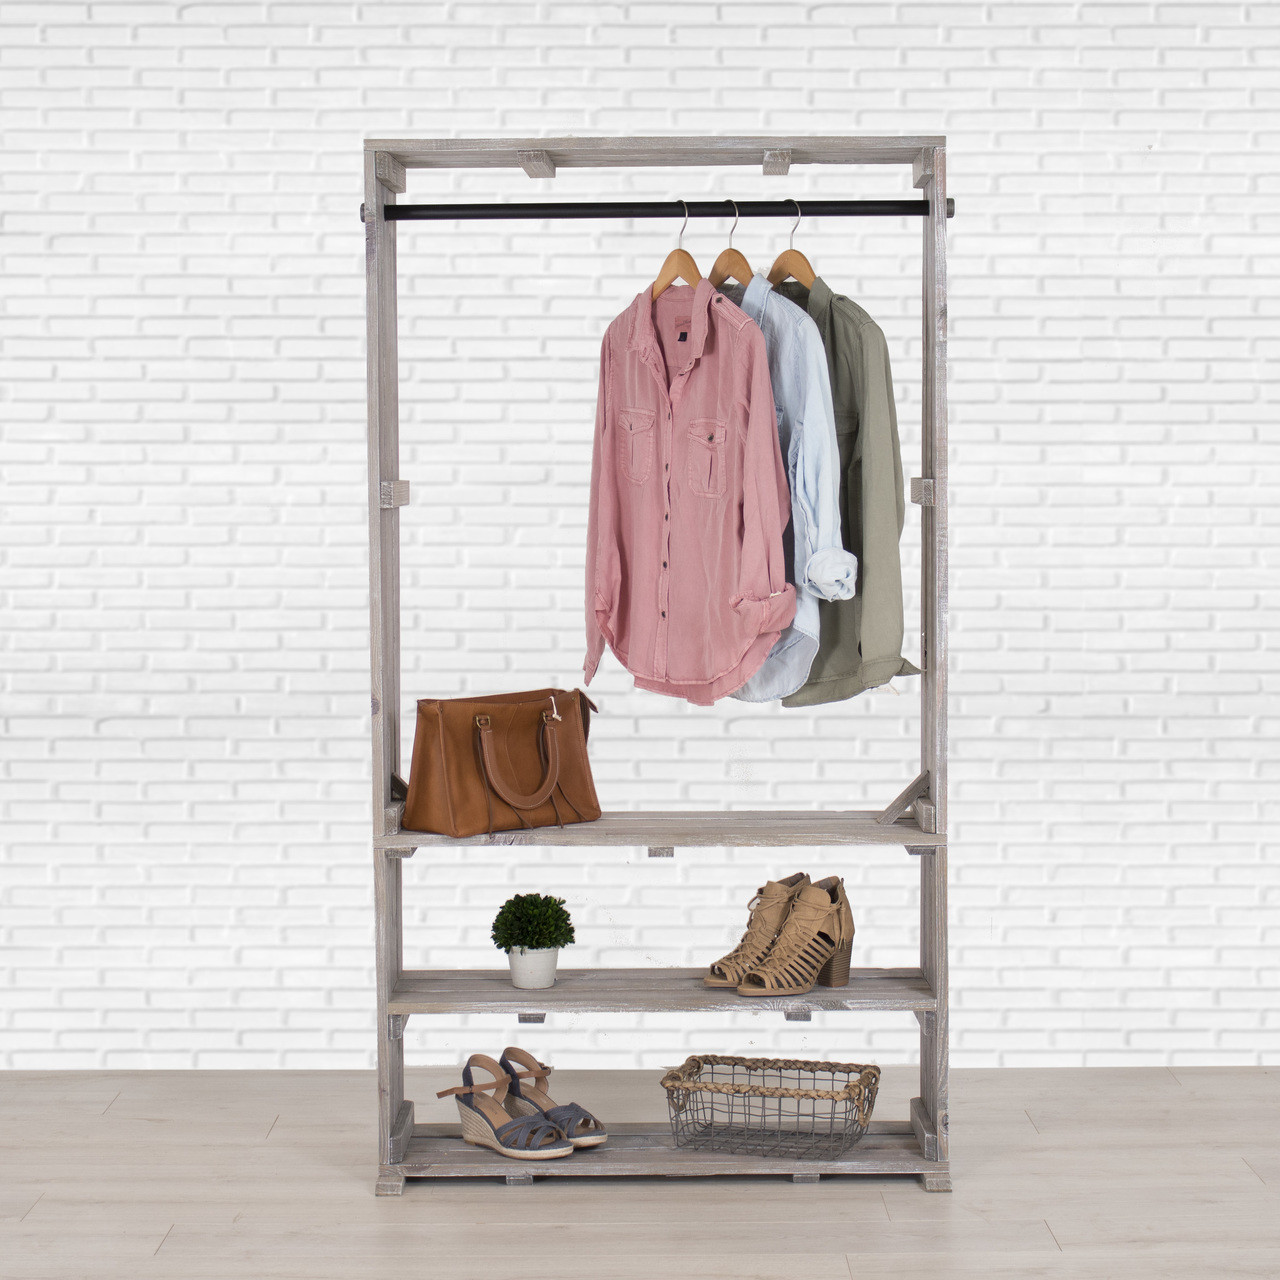 Wooden Clothing Rack With Shelves Free Standing Clothing